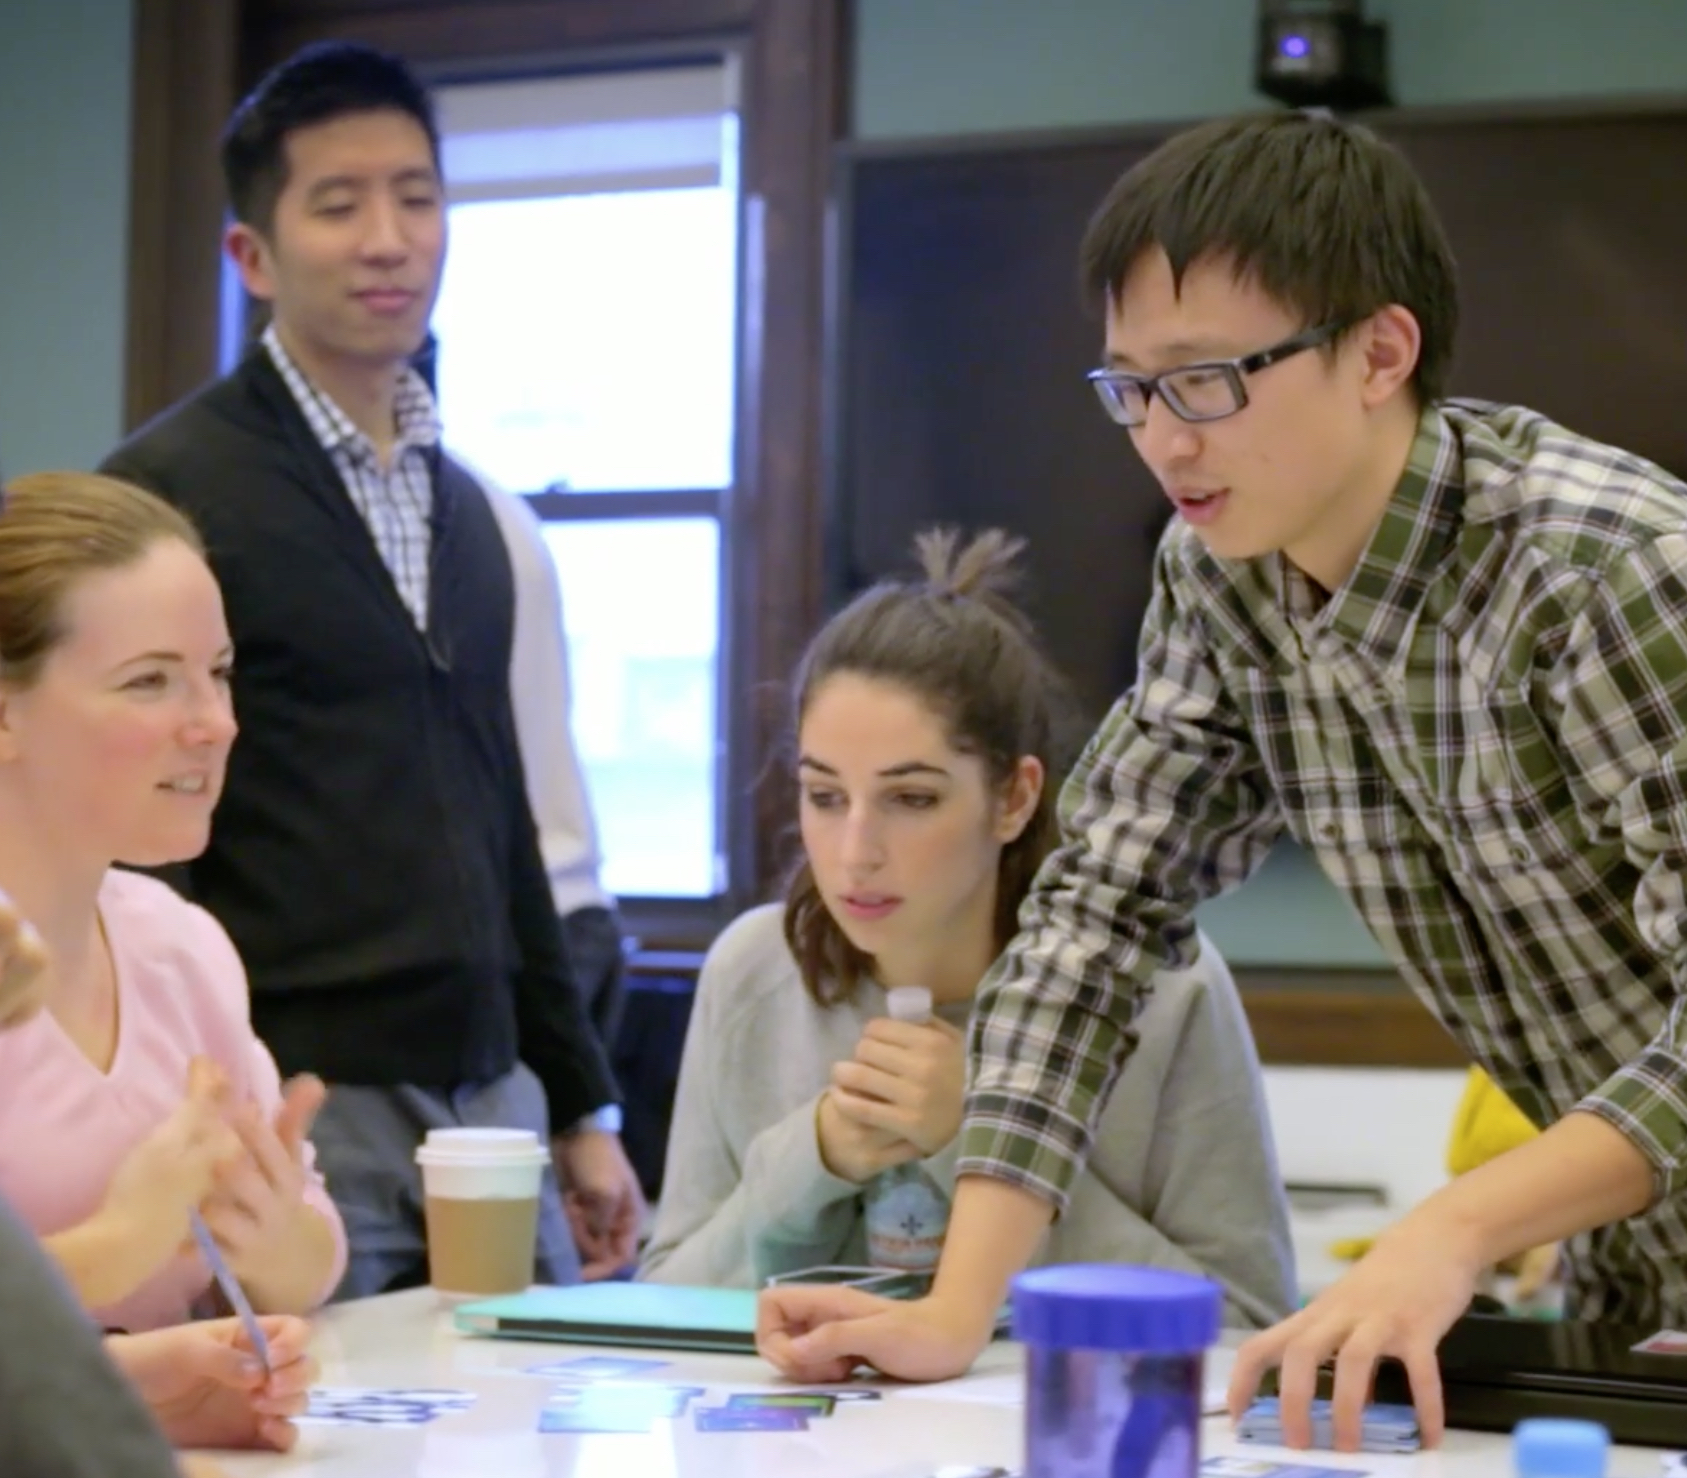 ALPHA PHASE Faculty member Joey Lee (standing, left) with members of a student project team. The teams worked with experienced researchers and mentors to critically examine their process and work.